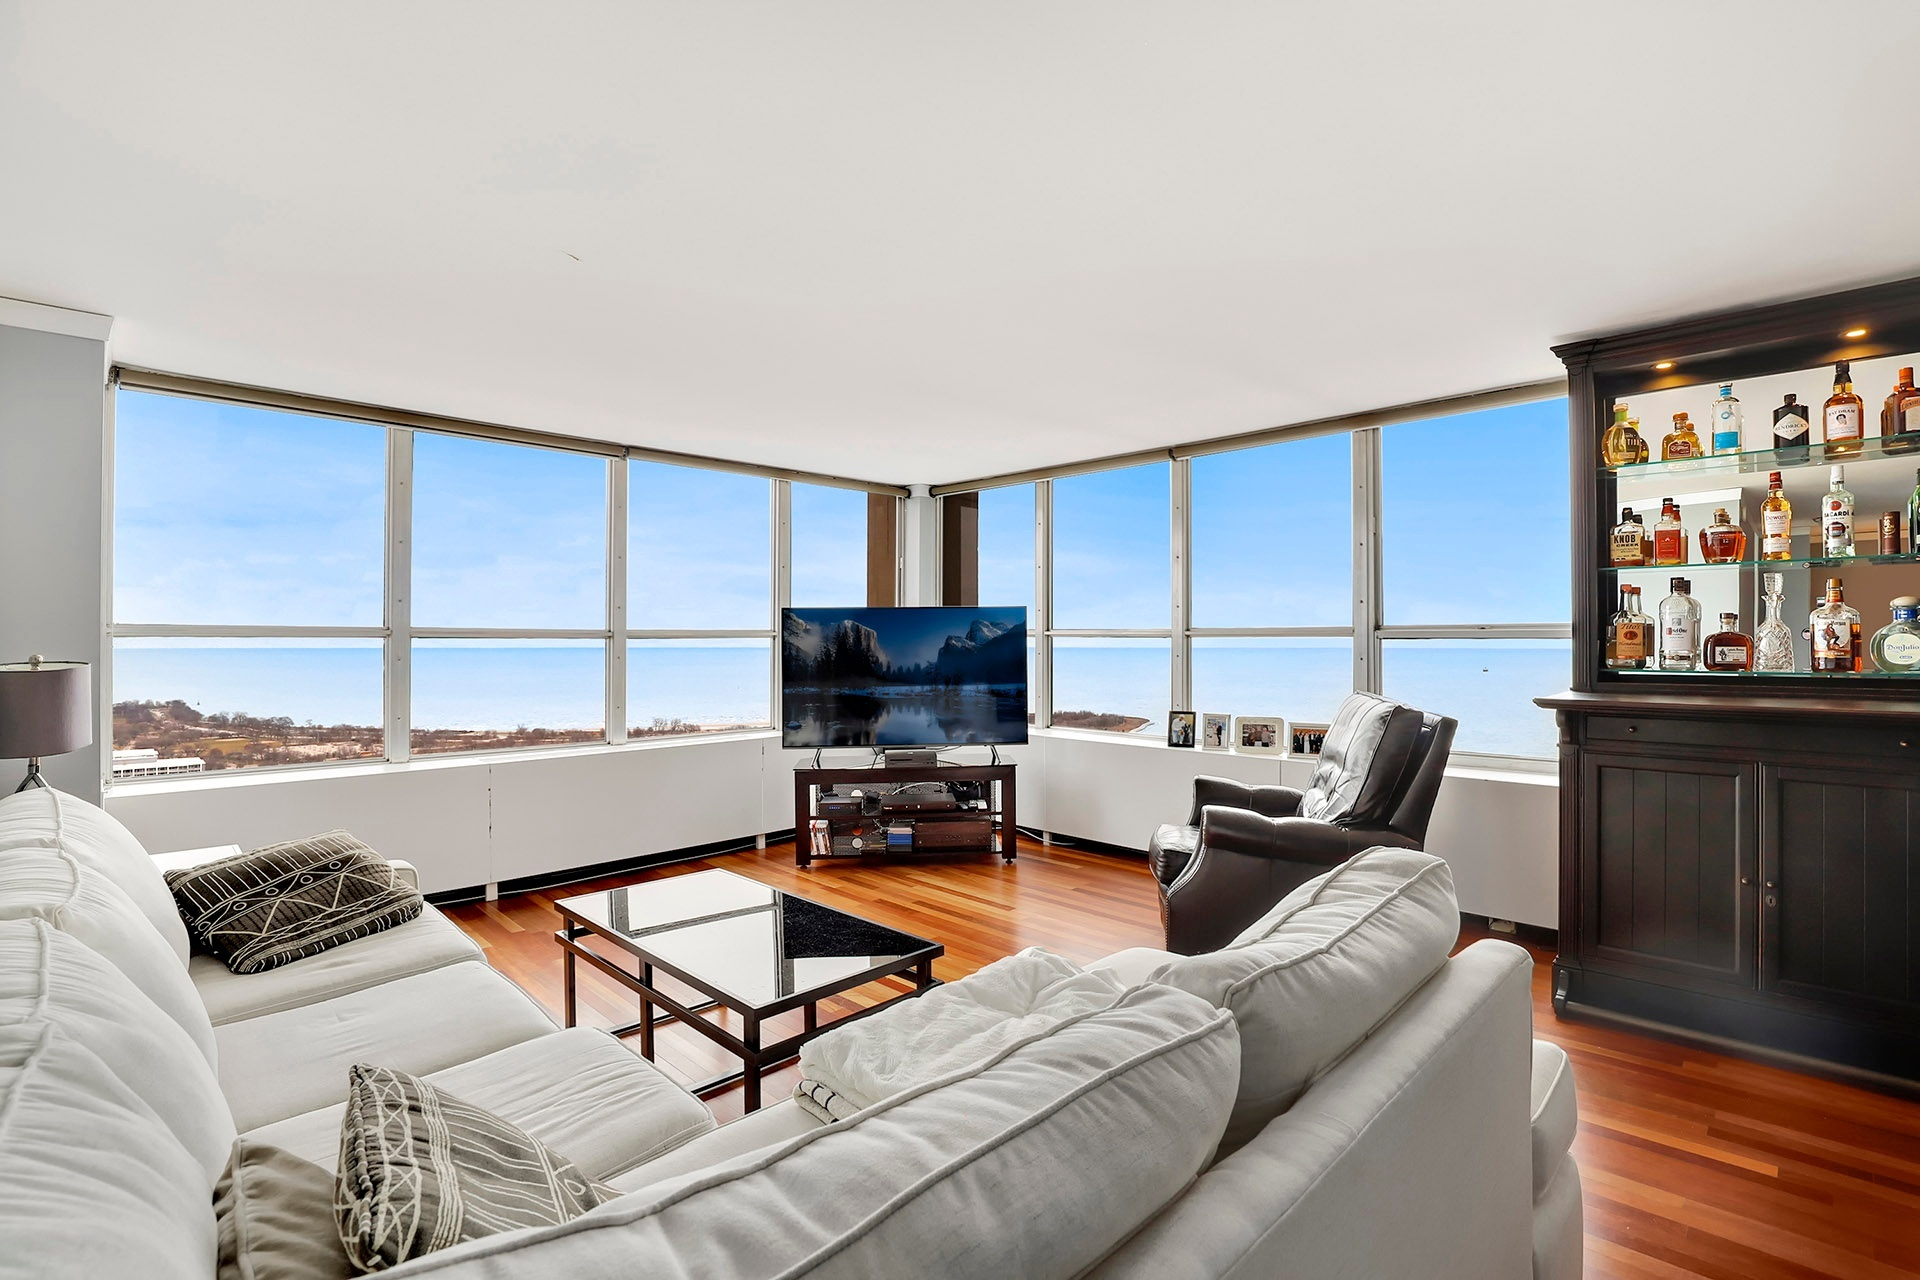 A living room with hardwood floors, a gray sectional couch, and two walls of windows with views of Lake Michigan.